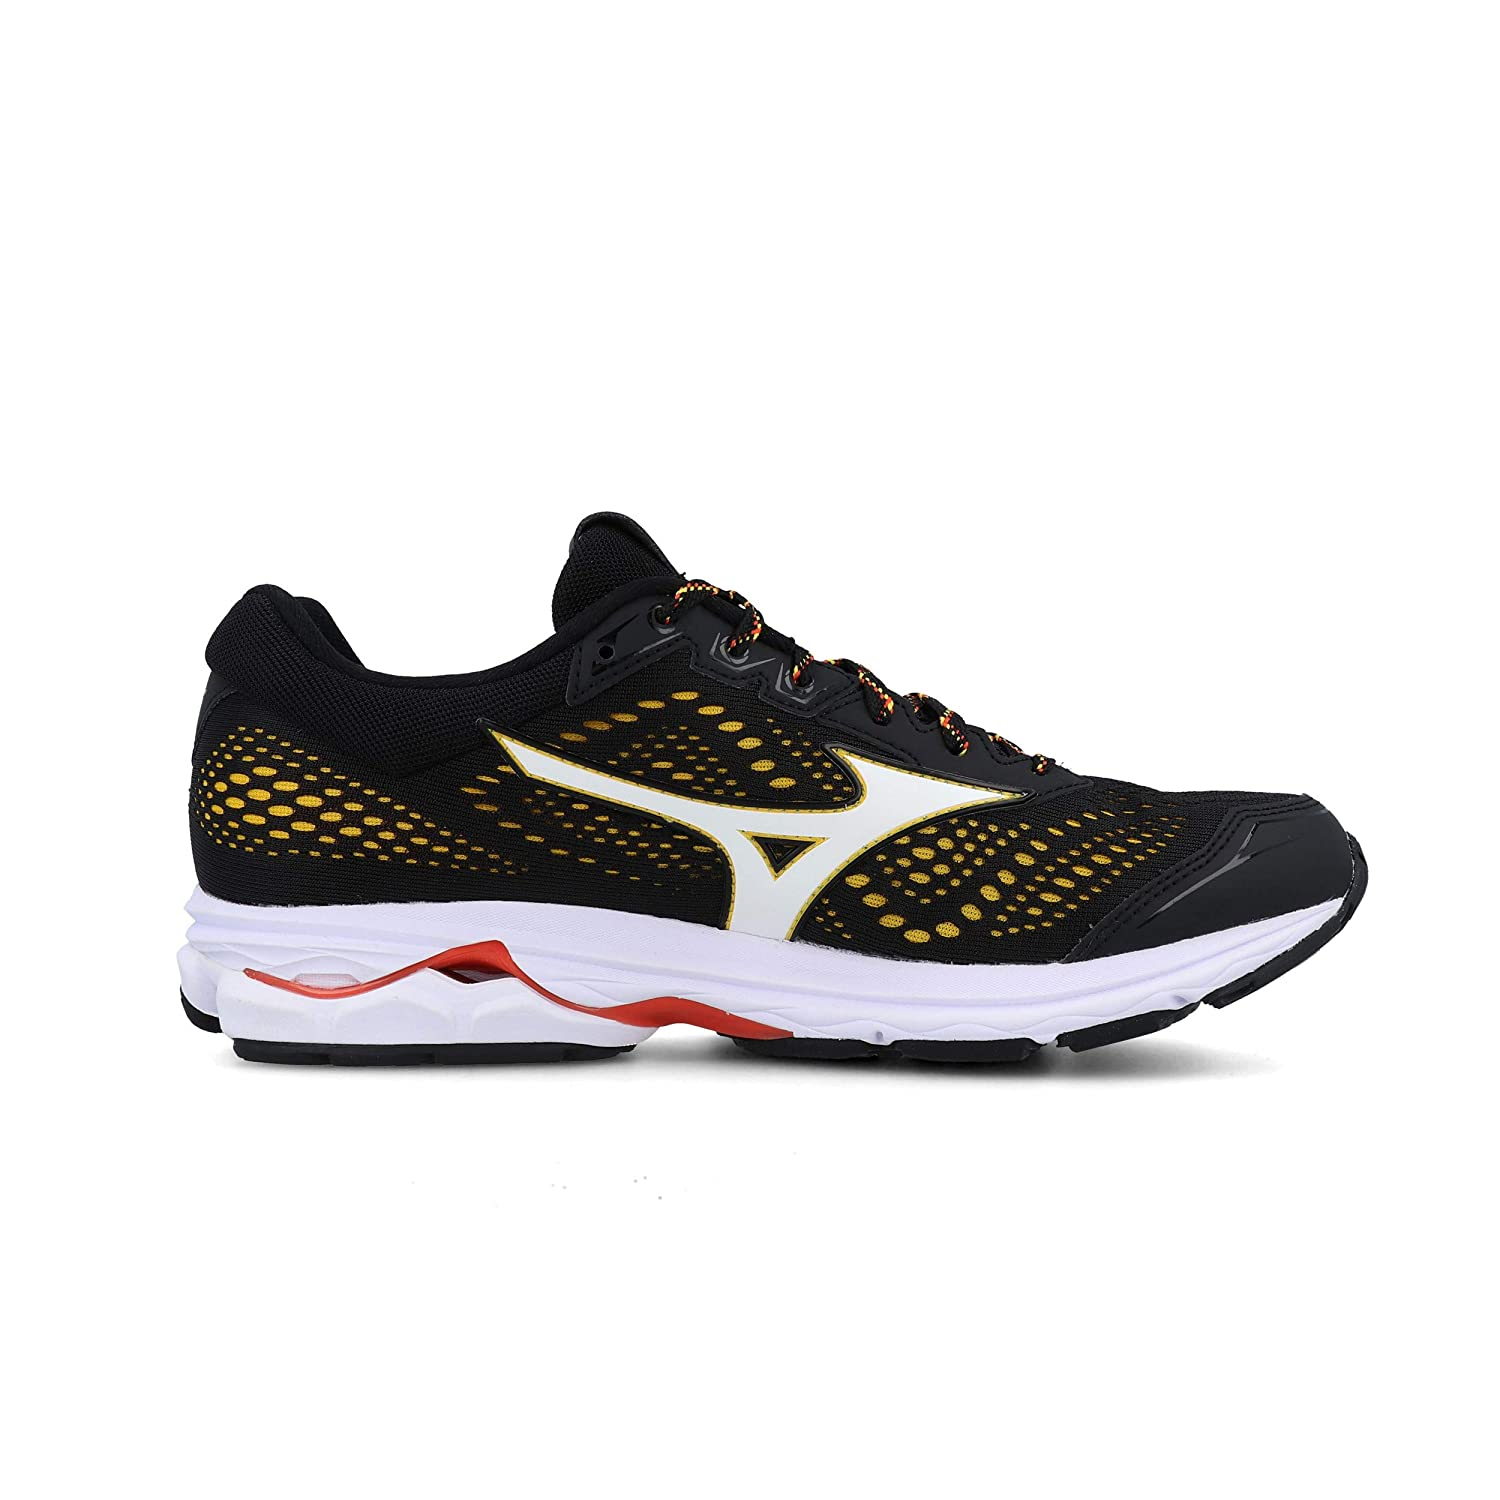 e2f3390aadc8 Mizuno Wave Rider 22 Comrades Limited Edition Running Shoes - SS19:  Amazon.co.uk: Shoes & Bags